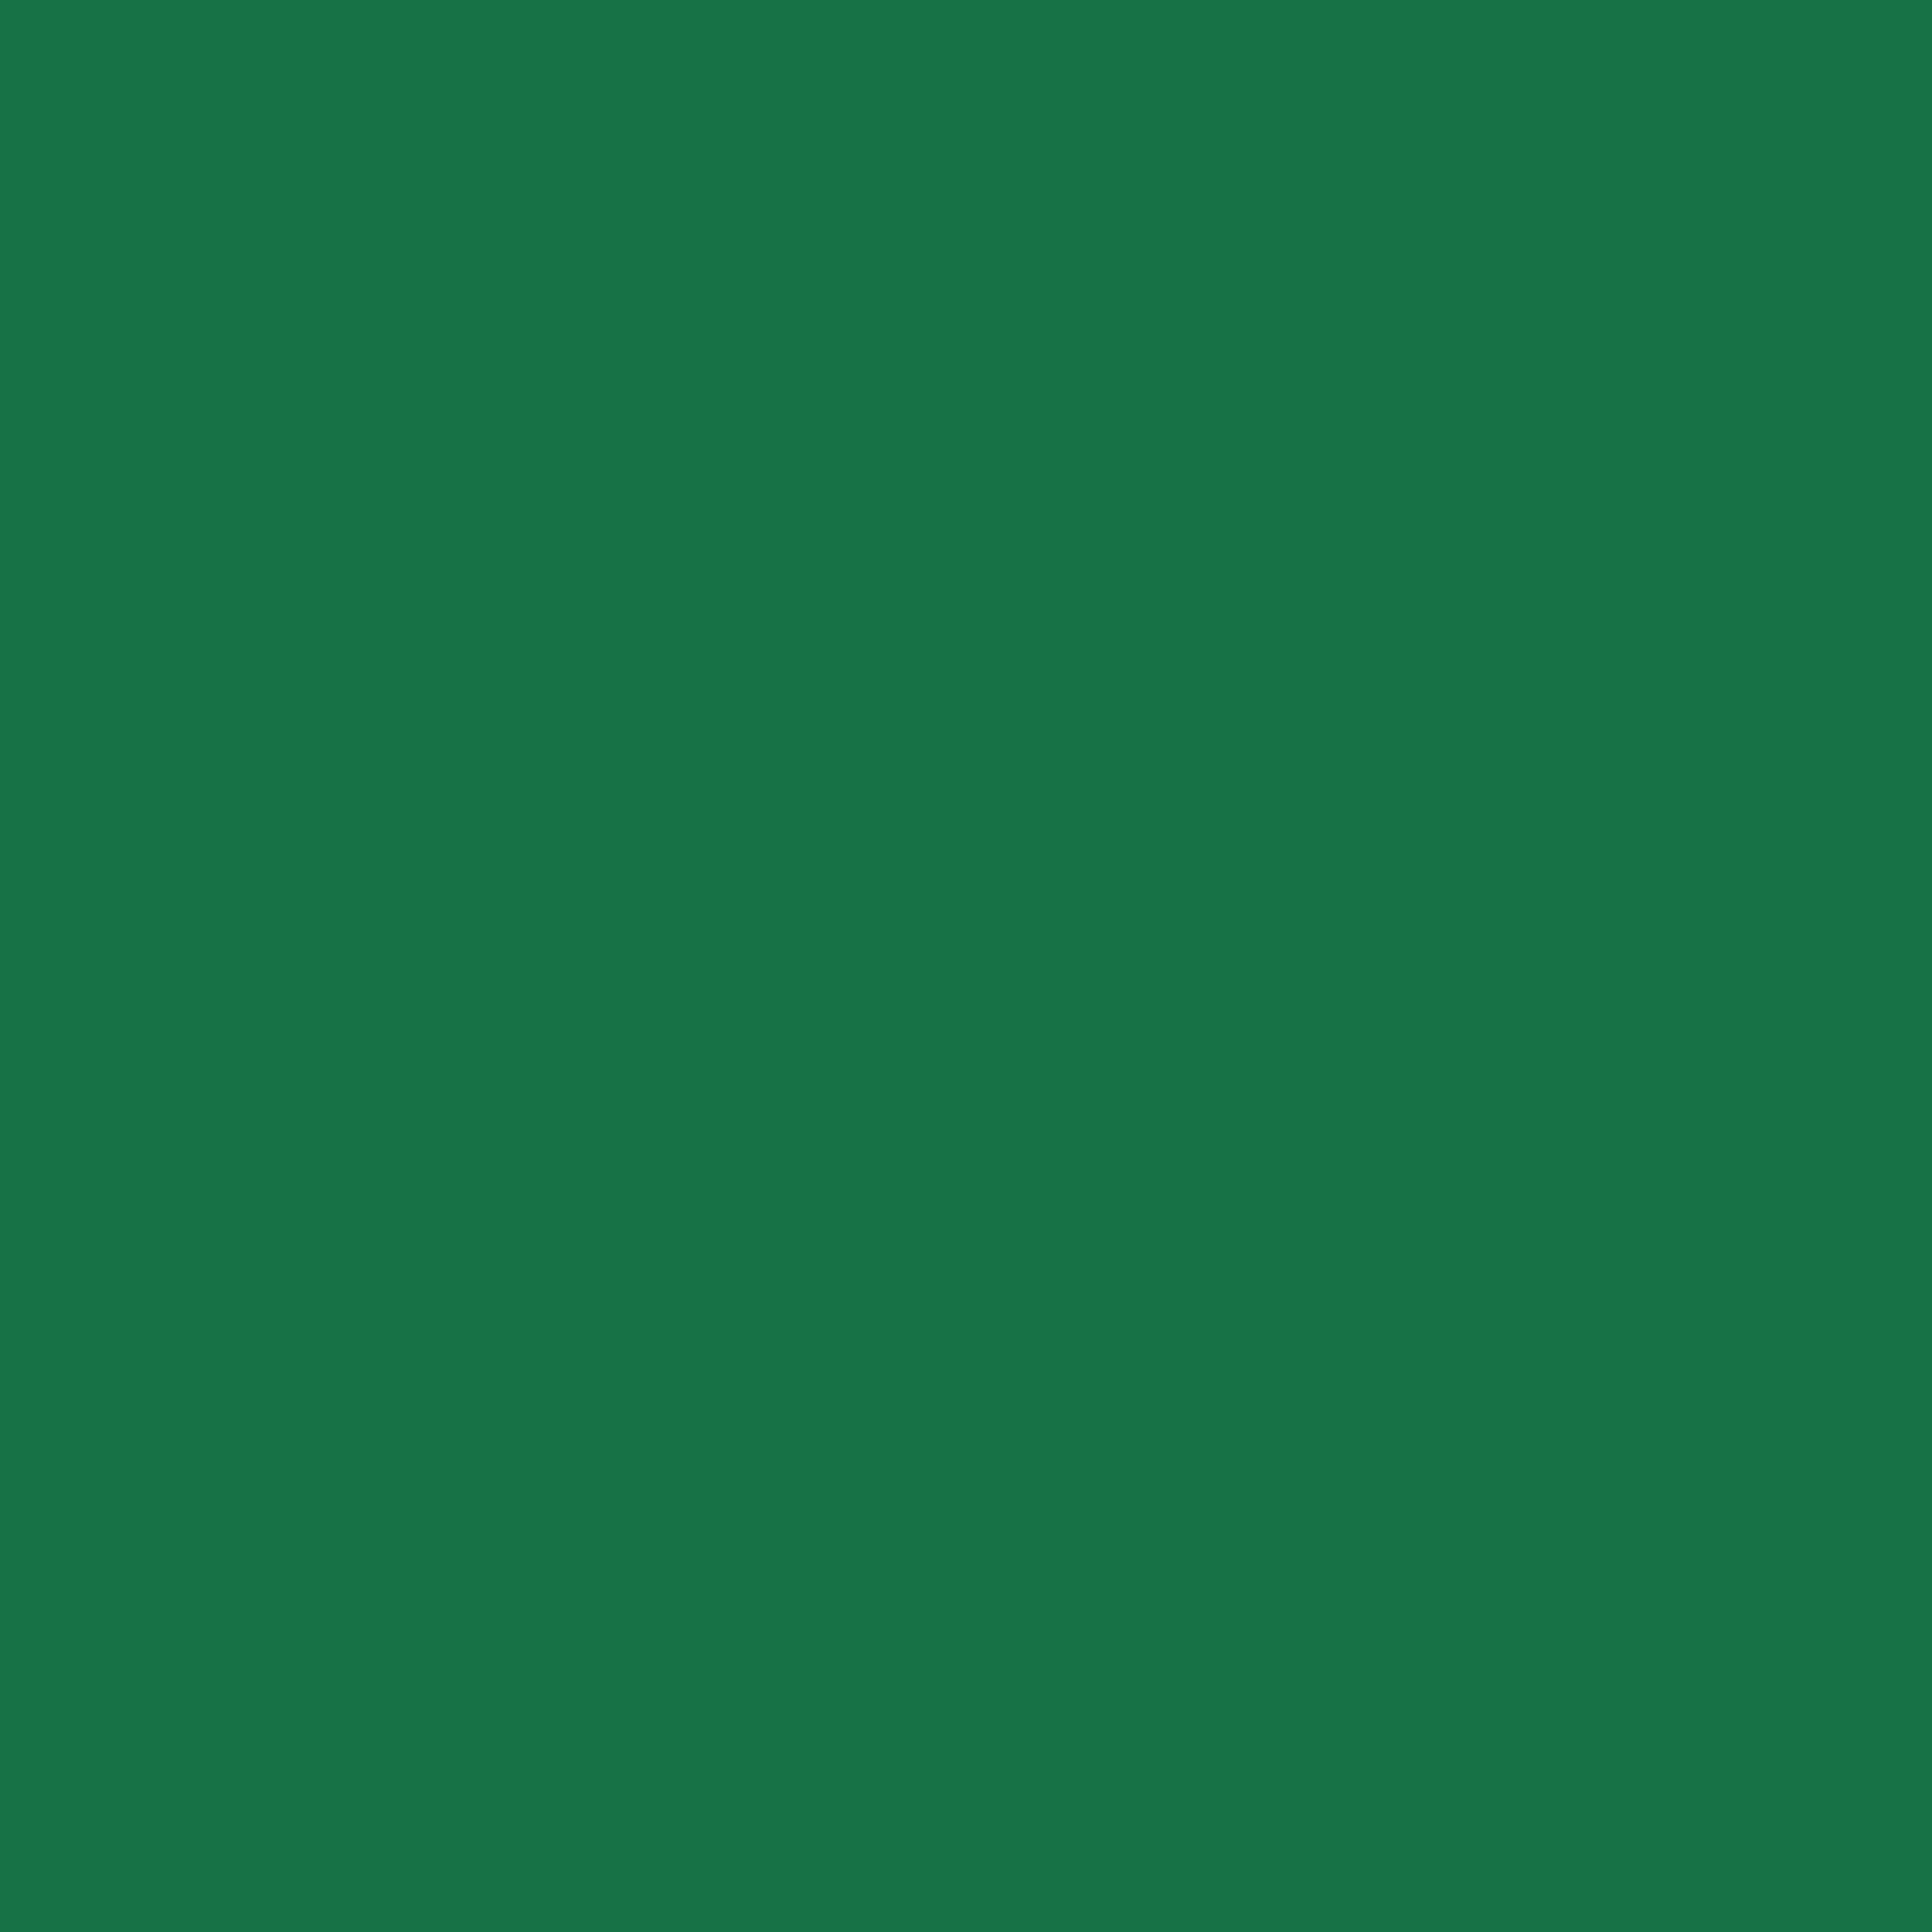 3600x3600 Dark Spring Green Solid Color Background